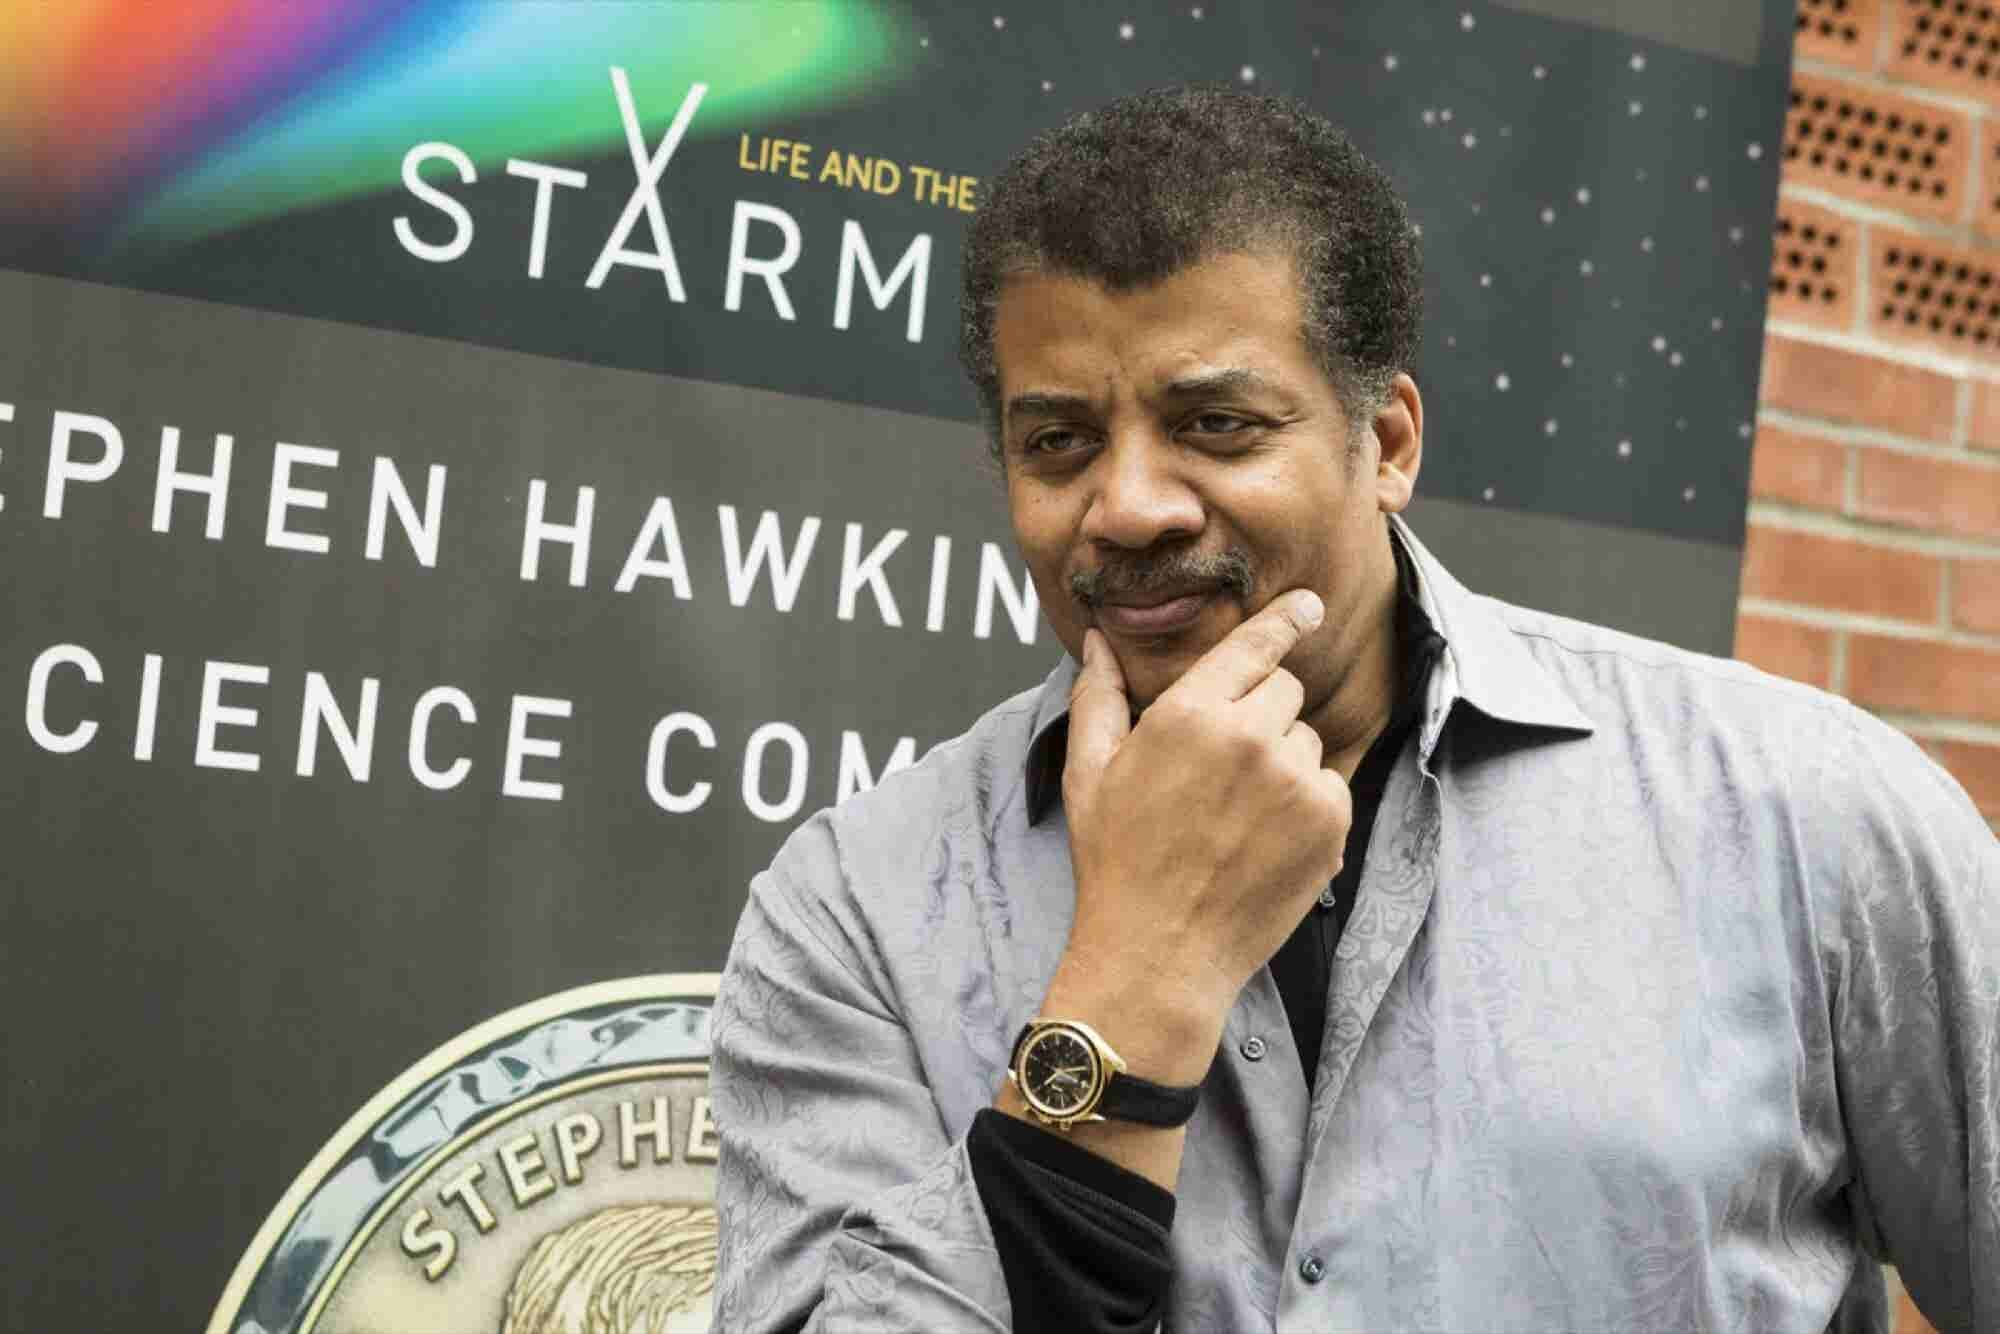 It Must Be Written In the Stars. Neil deGrasse Tyson Says Marijuana Should Be Legal.